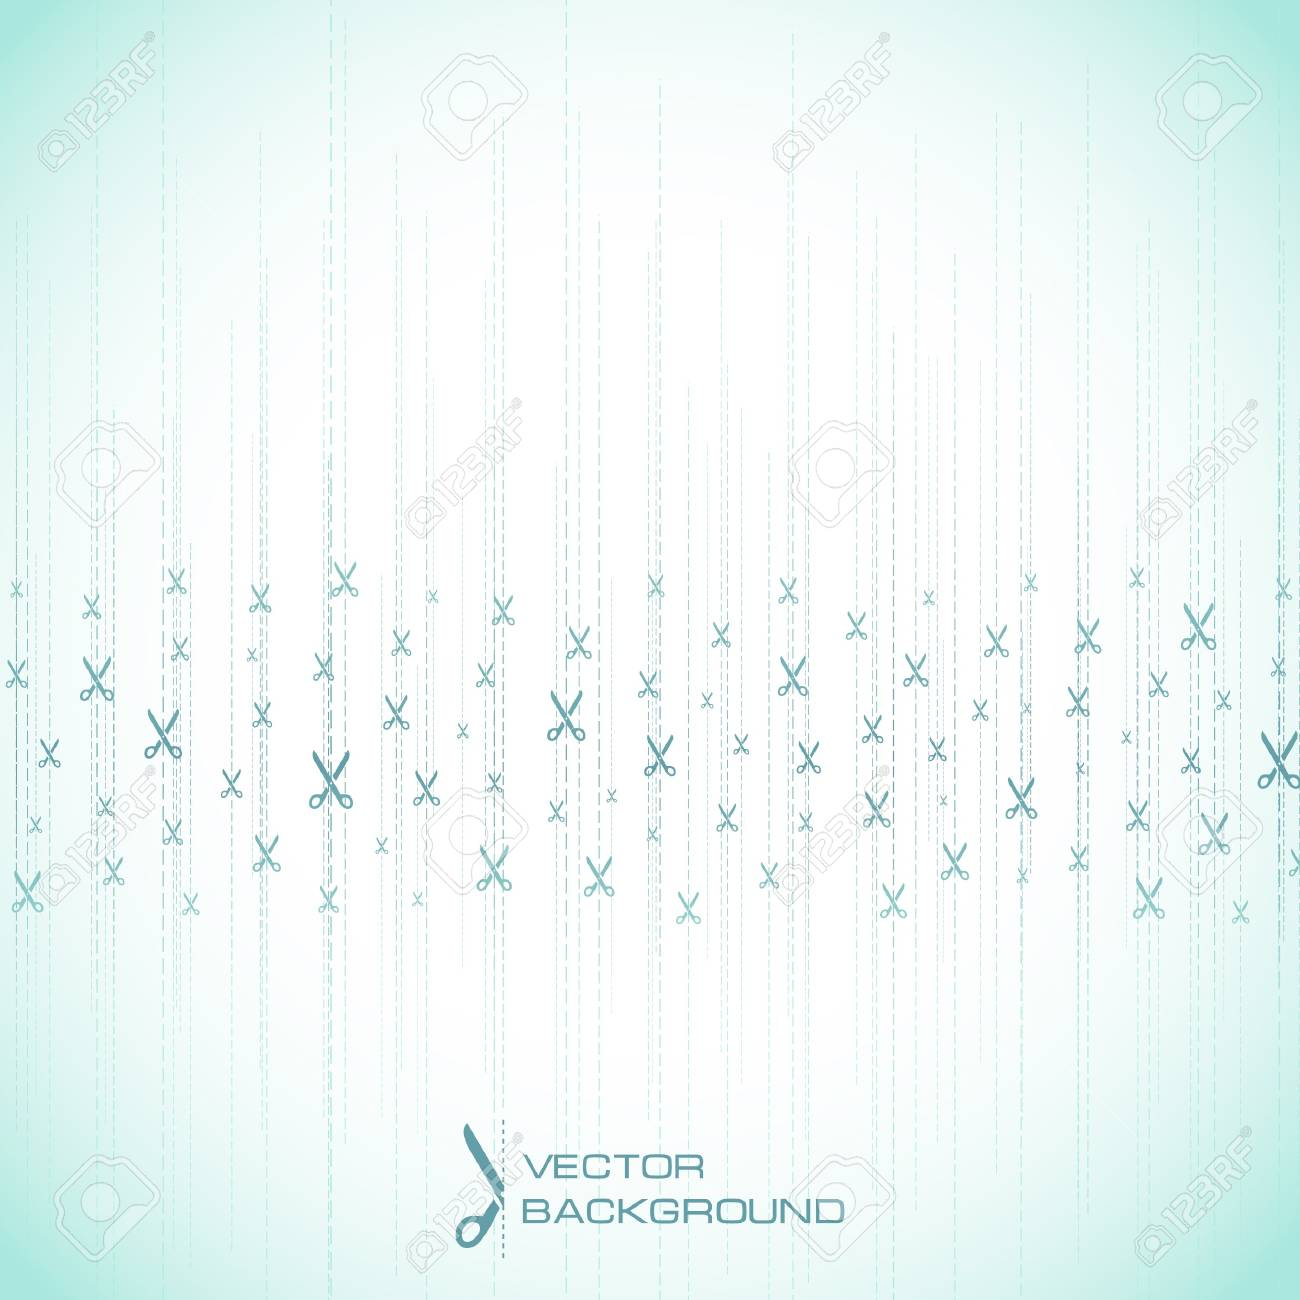 Abstract background with scissors Stock Photo - 8236867